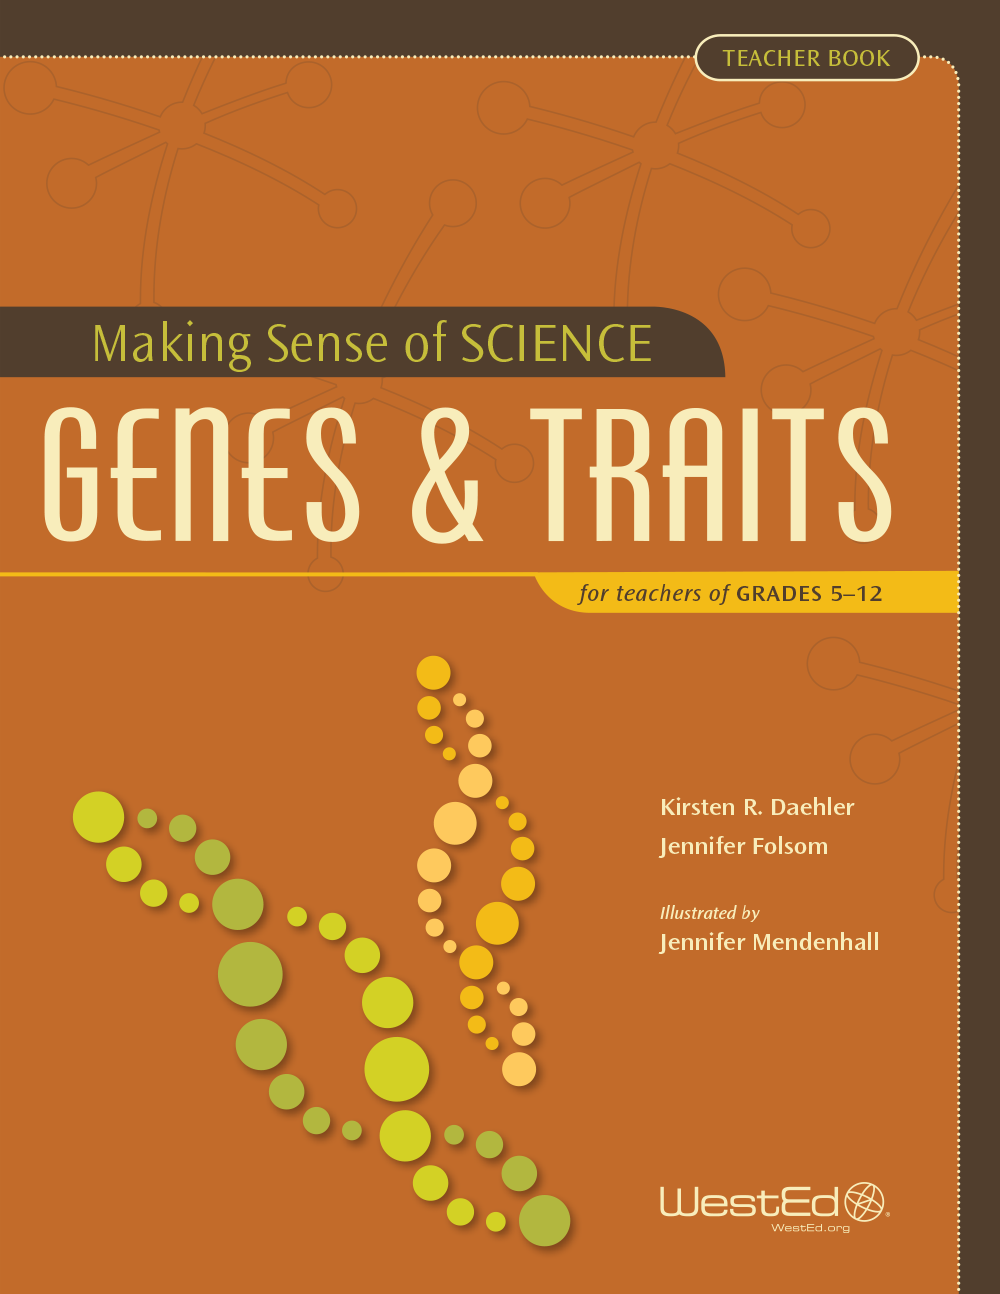 K 12 science education professional learning wested cover image for making sense of science genes traits for teachers of grades 5 fandeluxe Choice Image